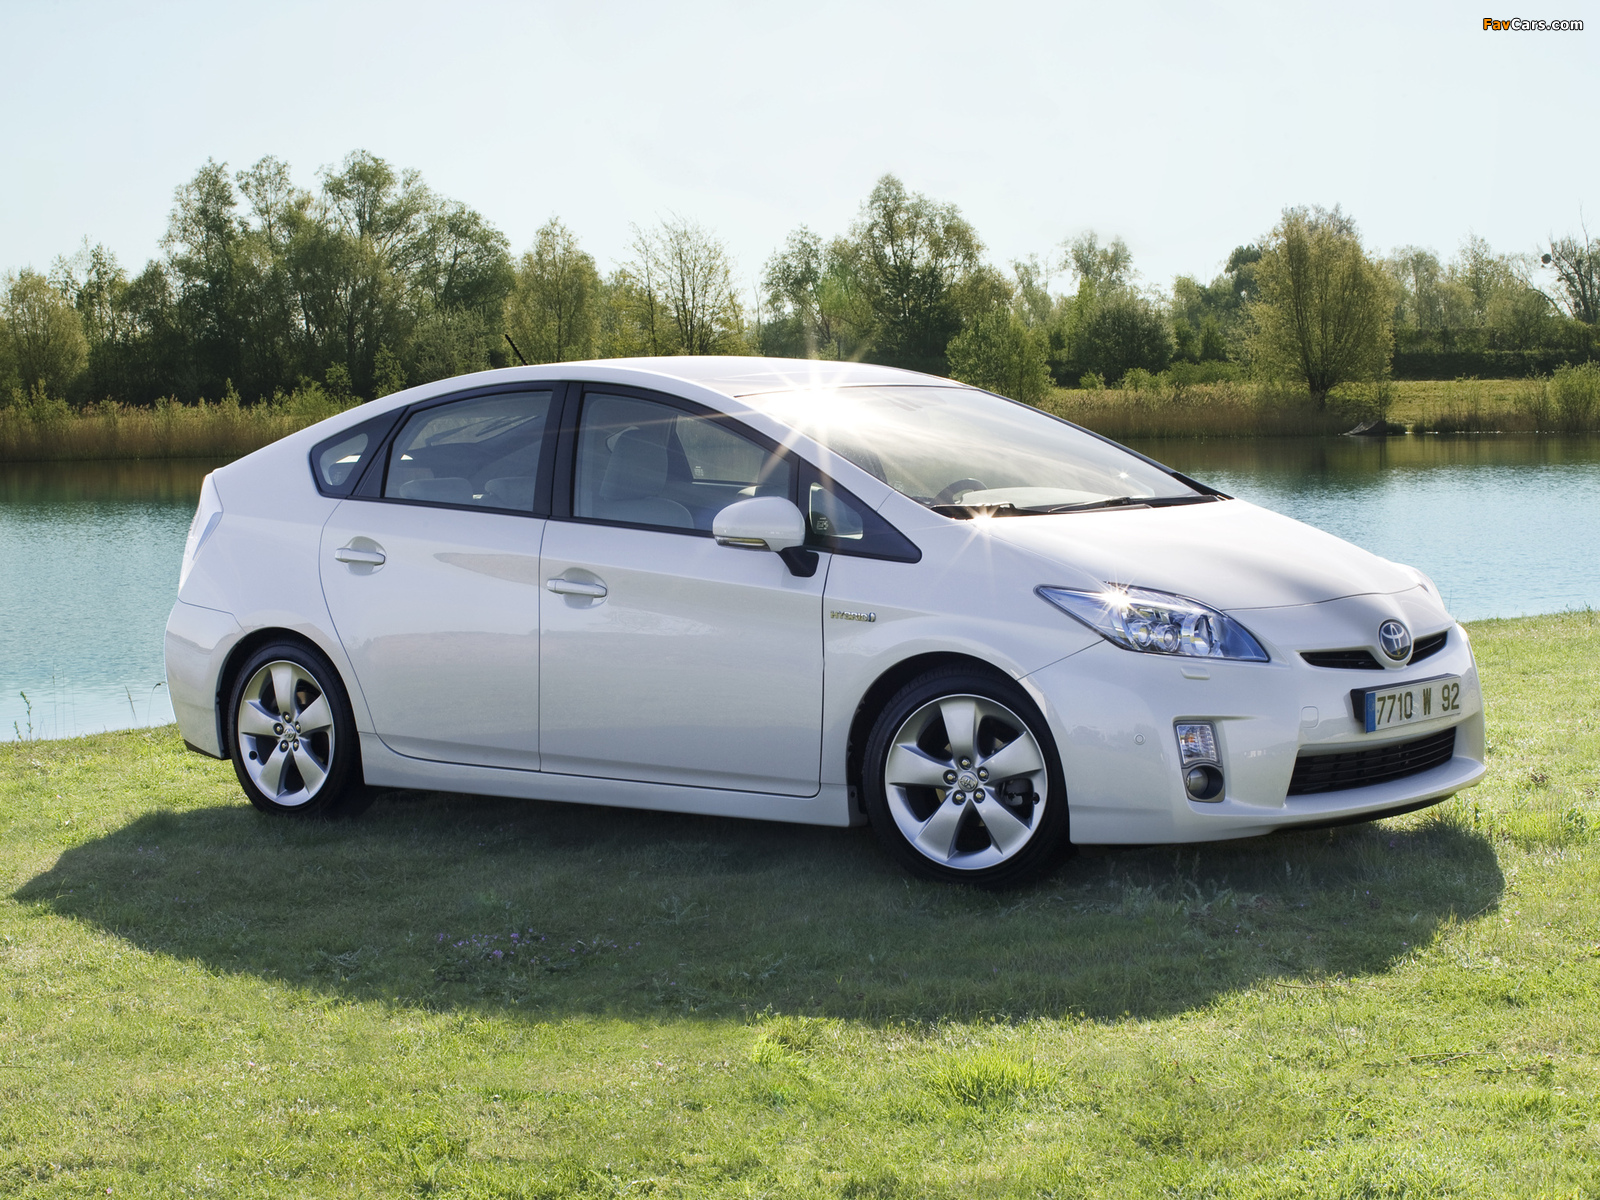 2017 Toyota Prius Hybrid Car | Take everyone by surprise.